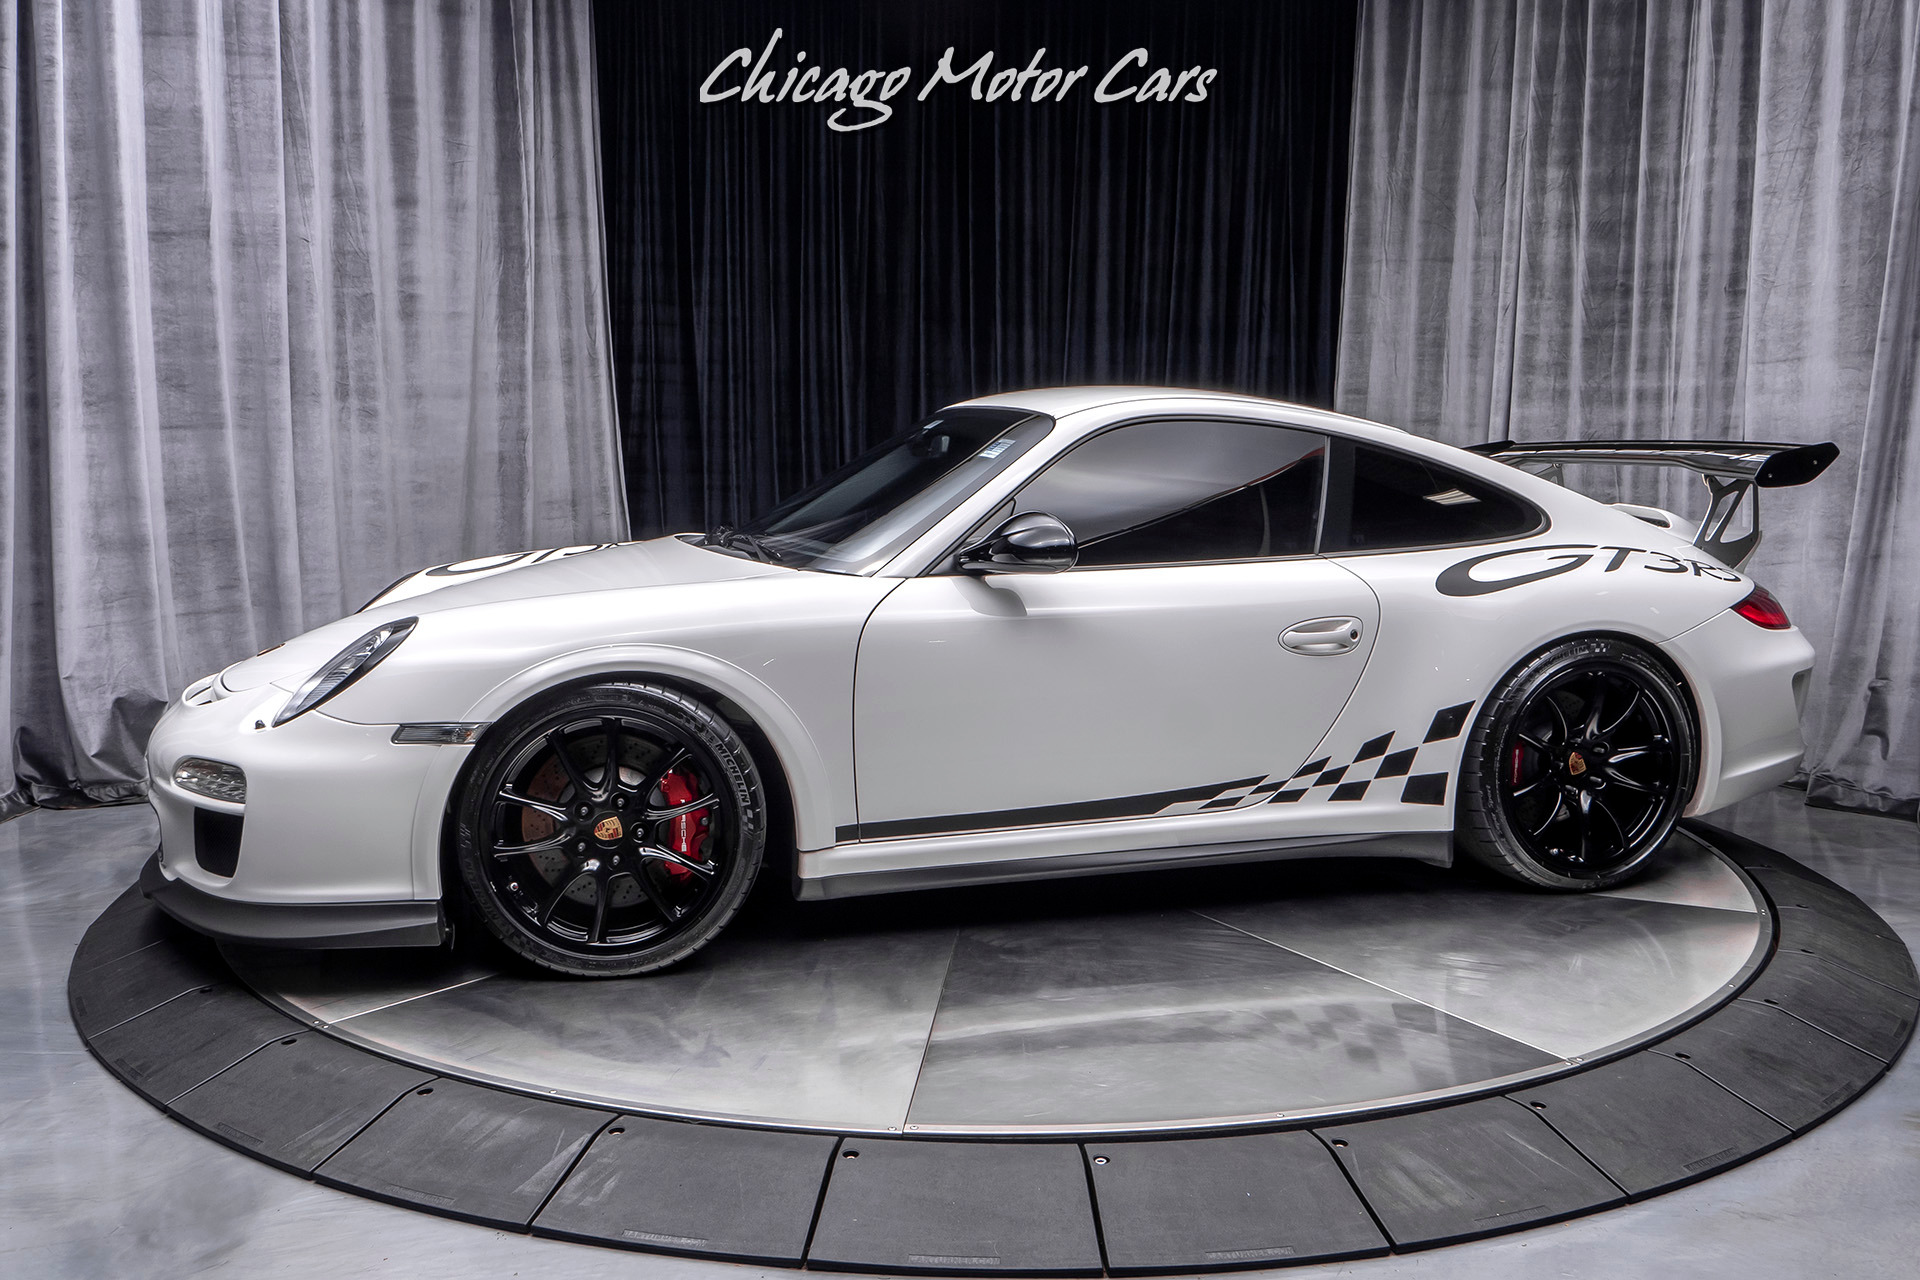 Used-2011-Porsche-911-GT3-RS-Coupe-6-SPEED-MANUAL-RARE-EXAMPLE